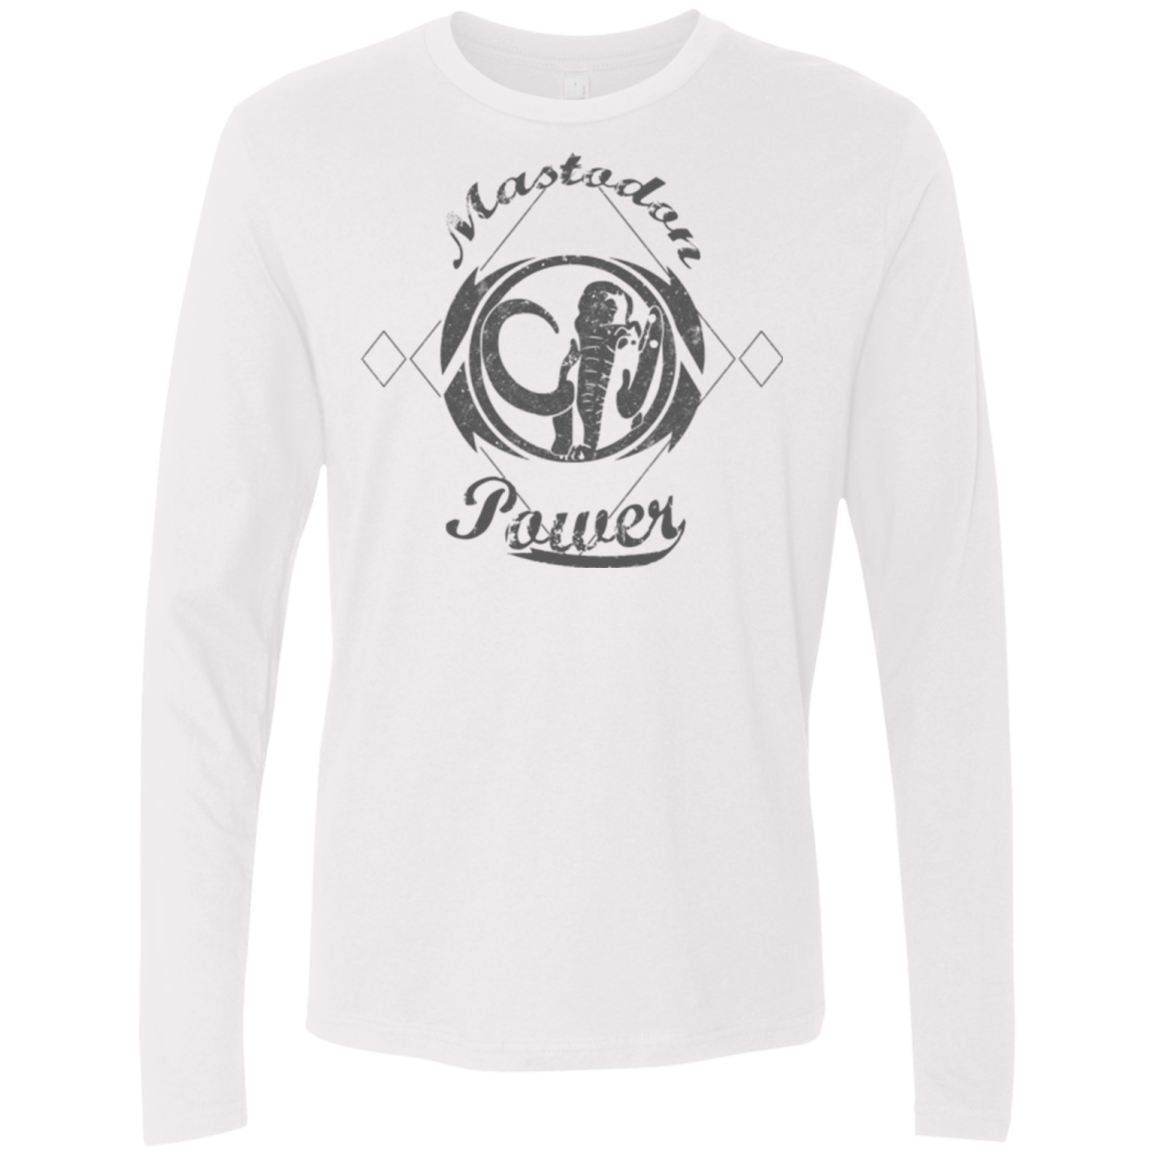 T-Shirts White / Small Mastodon Men's Premium Long Sleeve